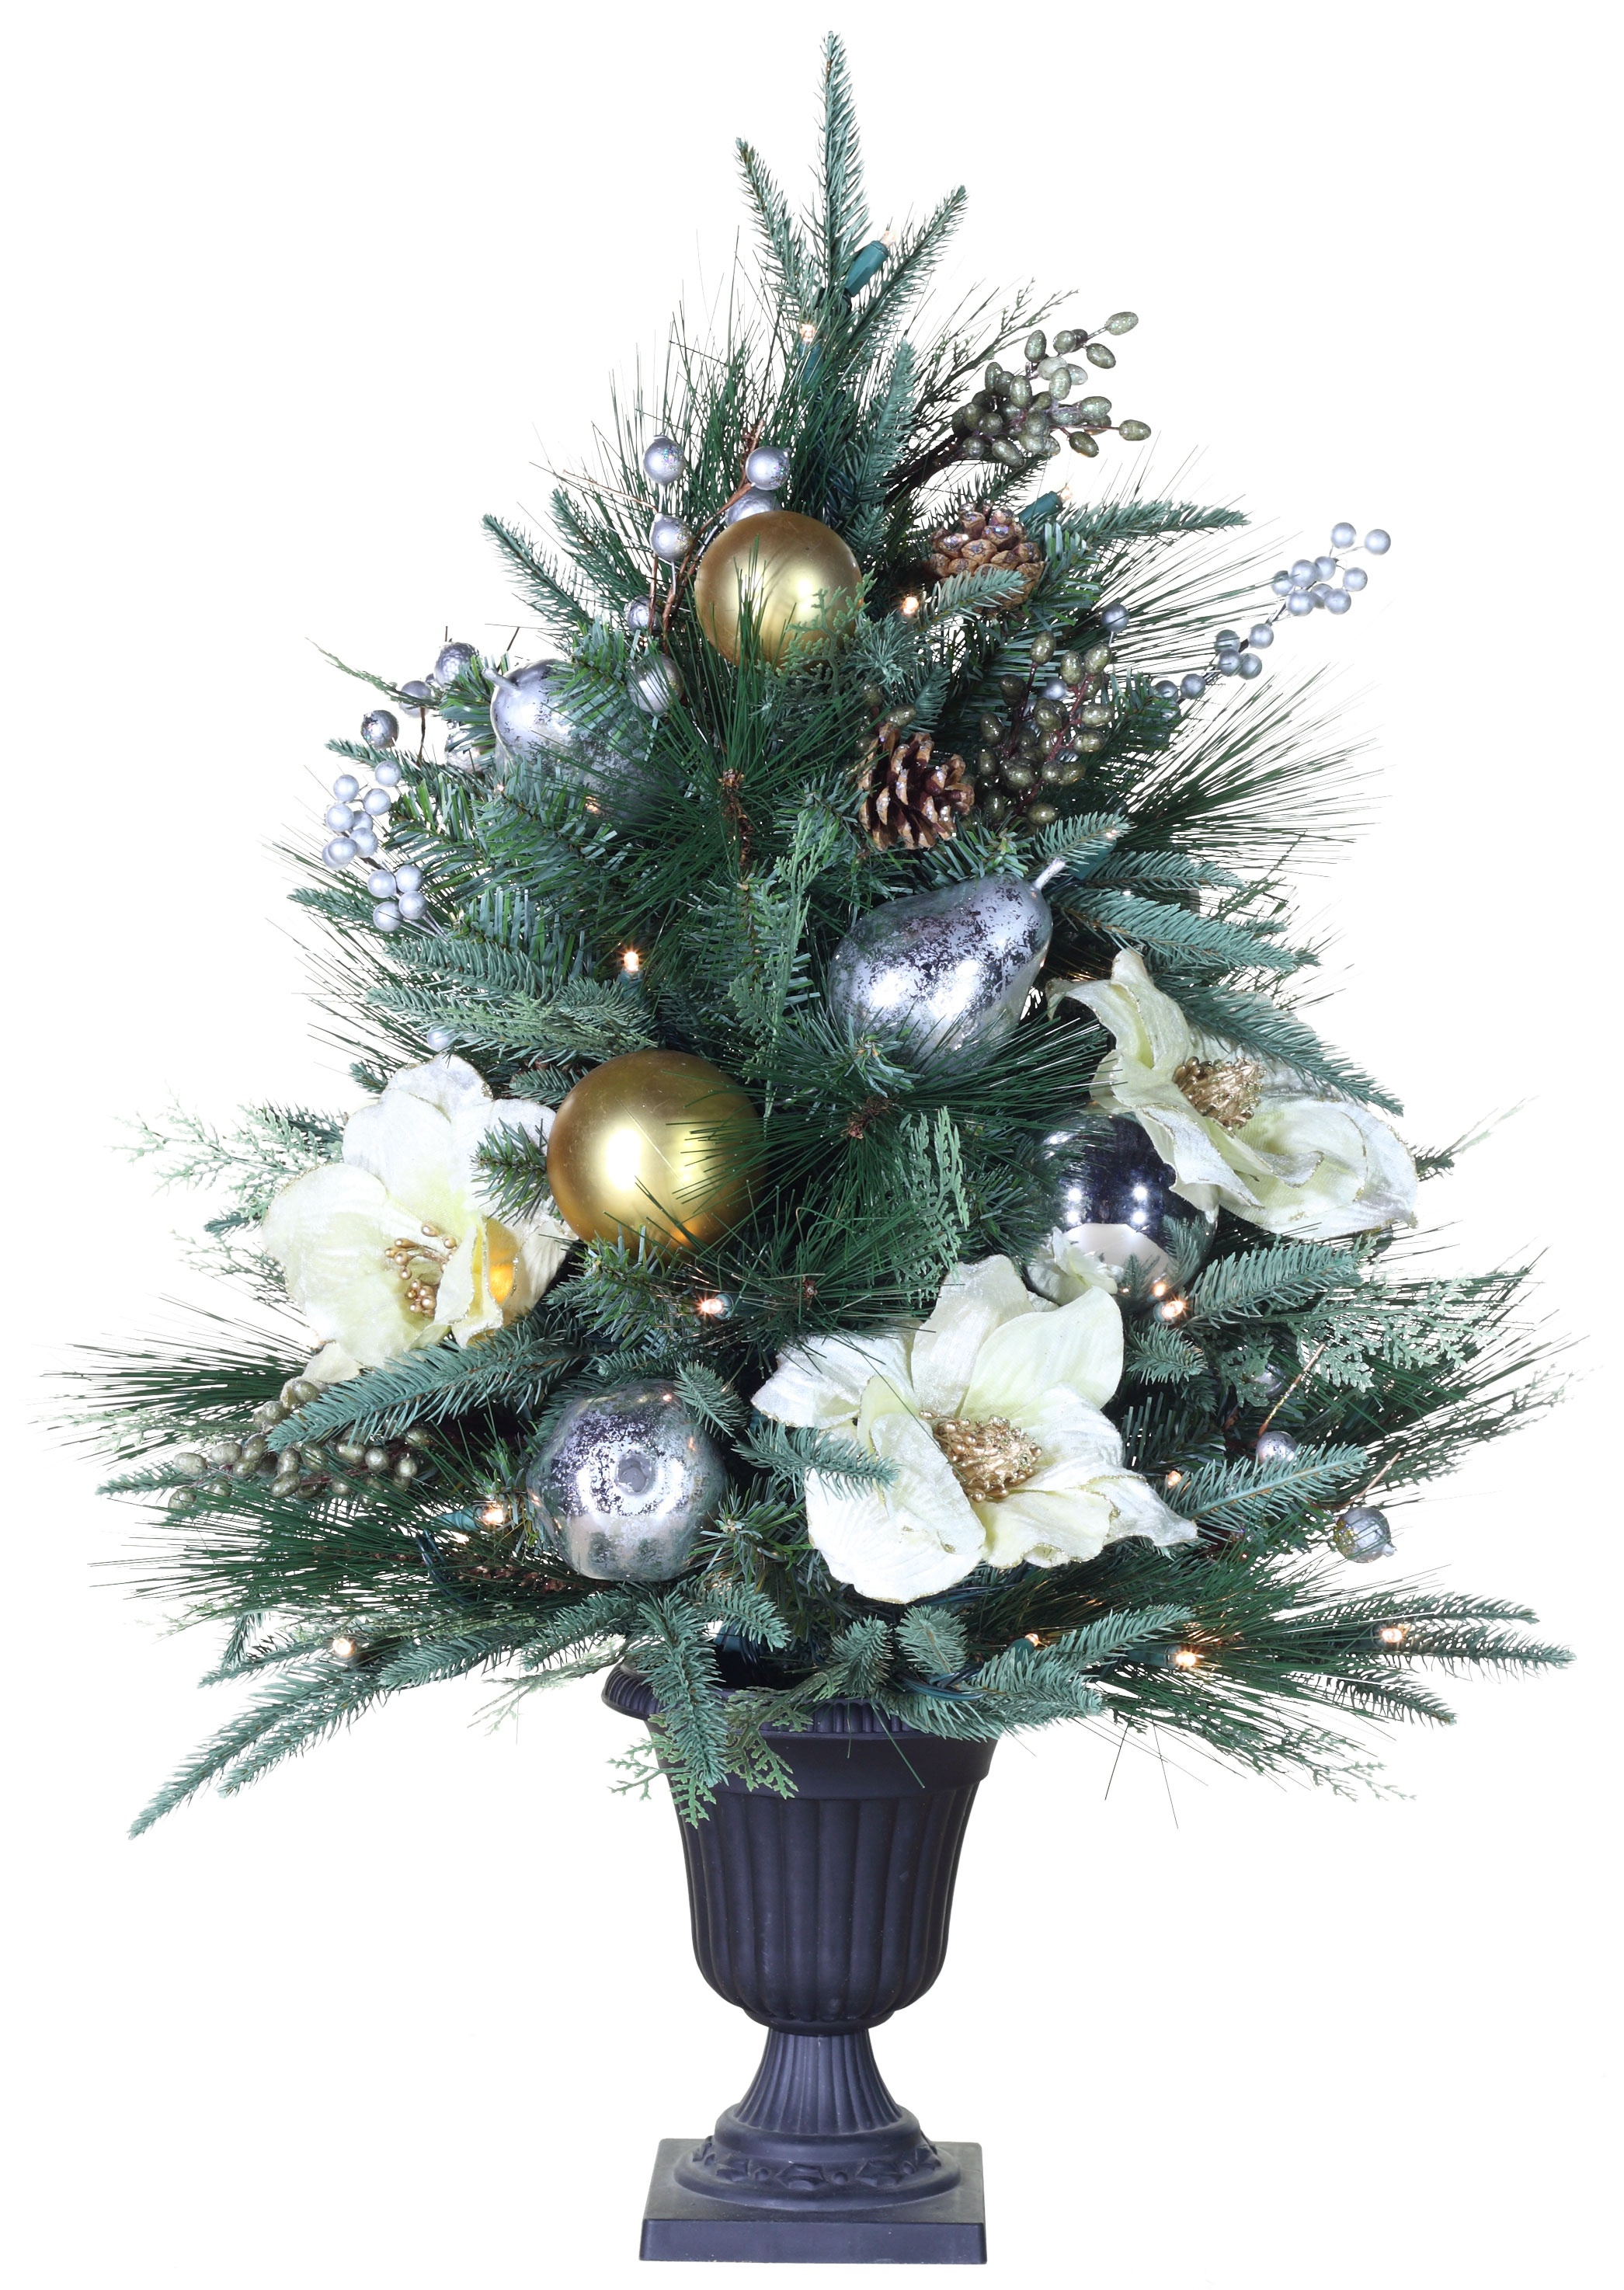 Aspen Silver Tabletop Christmas Tree